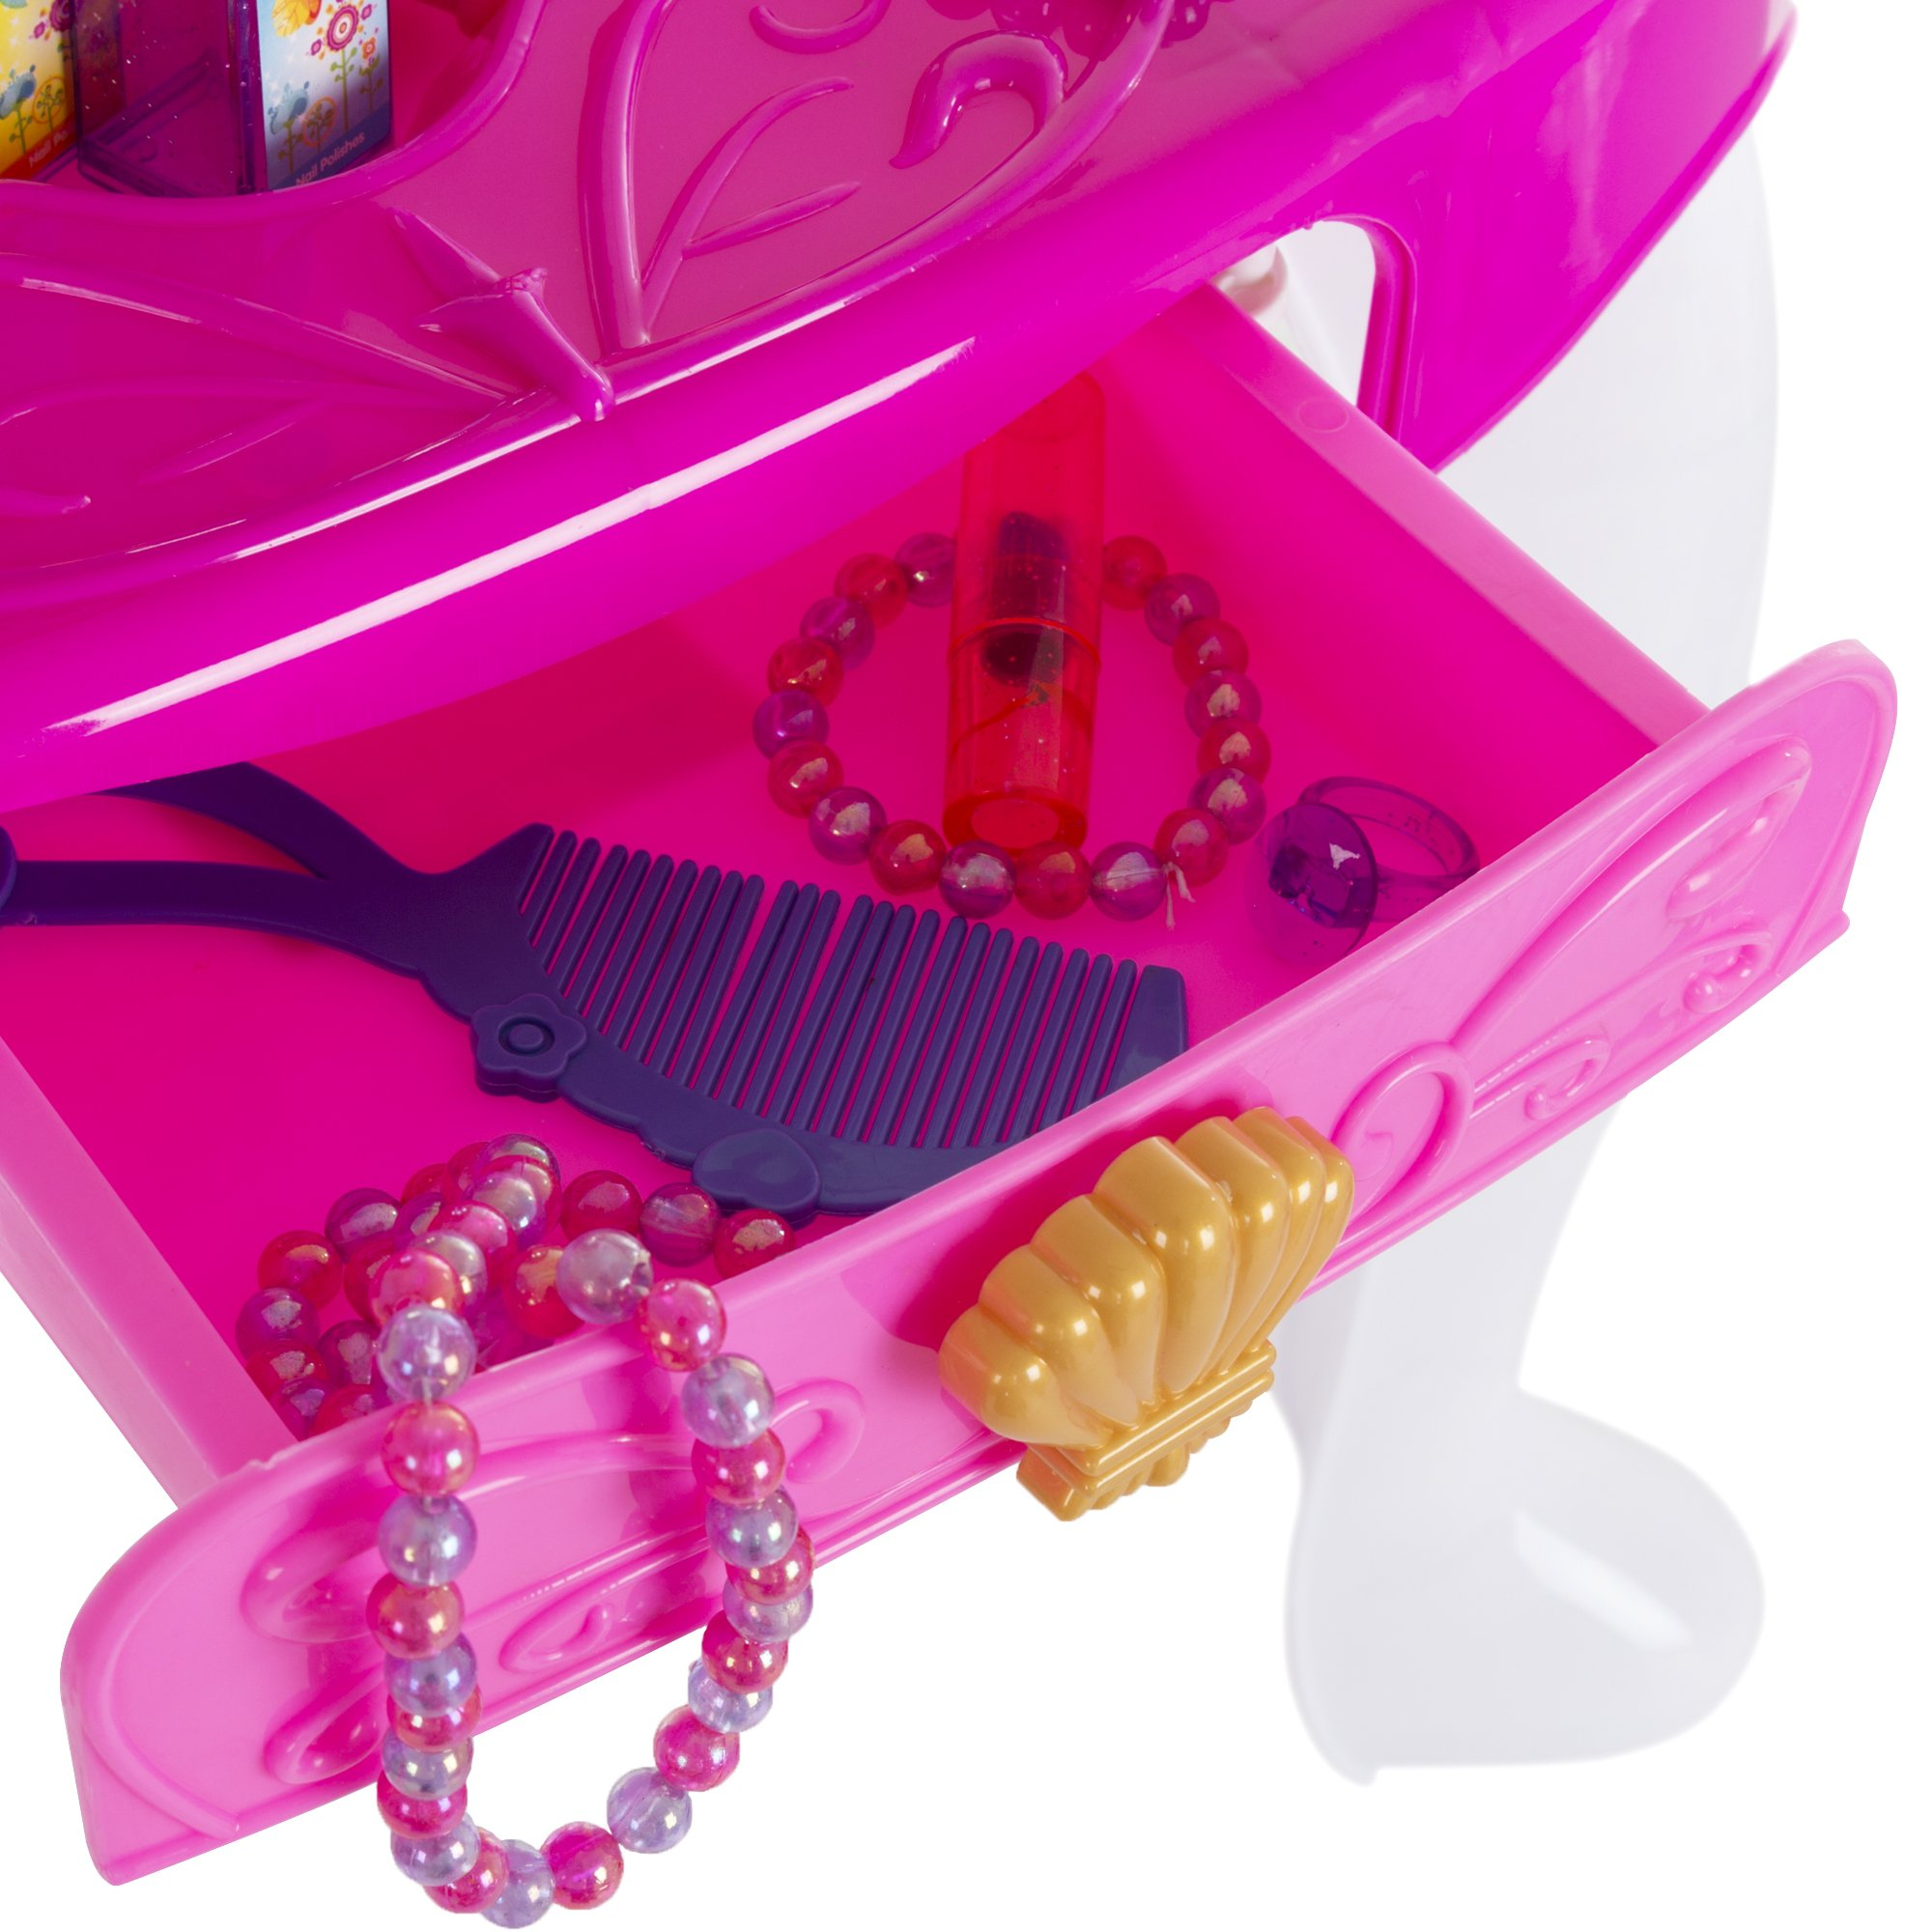 Deluxe Princess Vanity Set with Stool, Accessories, Lights, & Sound - 17 Peice Pretend Play Set! by Deluxe (Image #3)